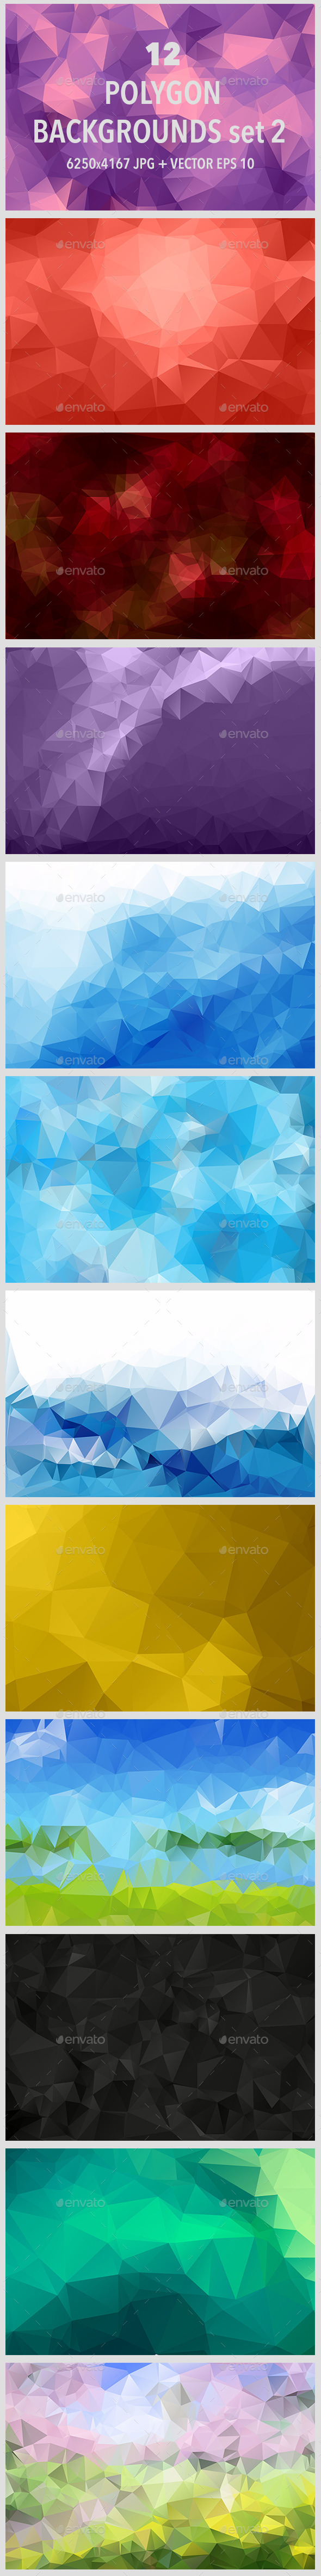 12 Polygonal Backgrounds Set 2 - Abstract Backgrounds